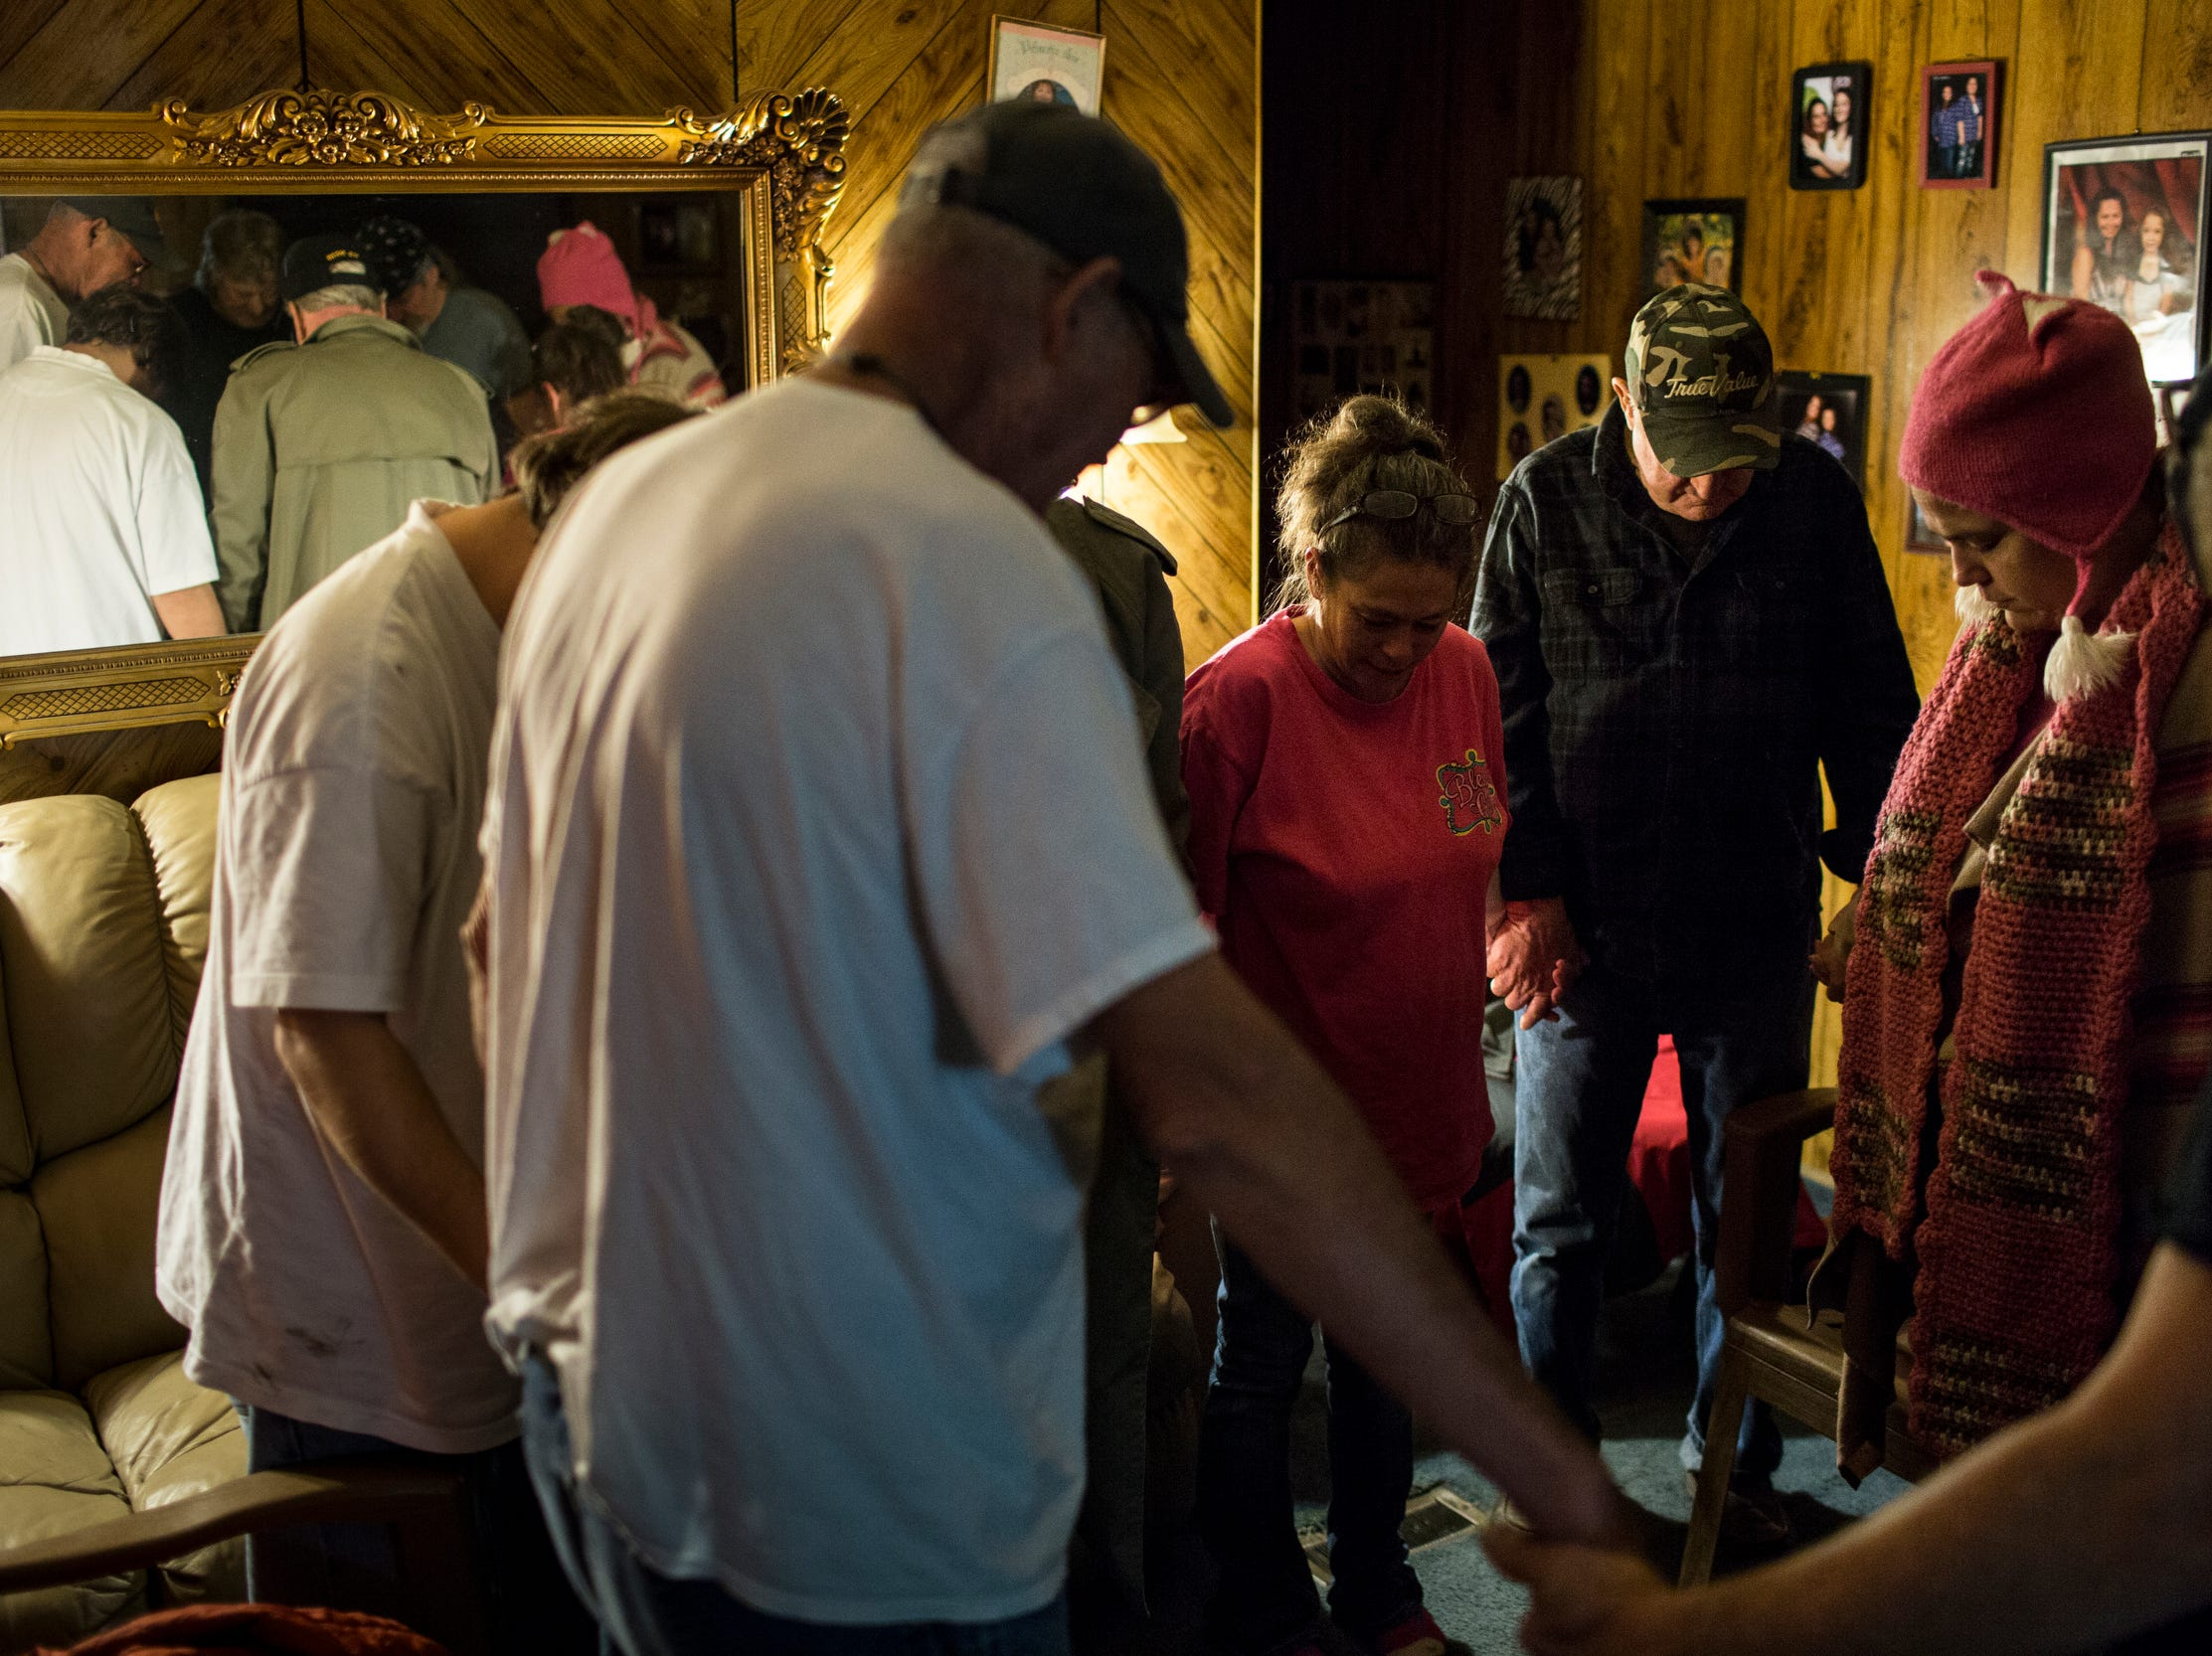 """January 24, 2019 - Members of the Lakeshore Community Improvement Group gather together for a prayer before the start of their meeting. The group meets every Thursday to discuss their community and talk about solutions for issues they see around their neighborhood. """"We're in this sinking Titanic together,"""" said co-chair Cassandra Meyer, who added that she thinks the group can help resolve other infrastructure issues in the neighborhood, such as tensions she says arise over parties and related traffic and noise complaints."""